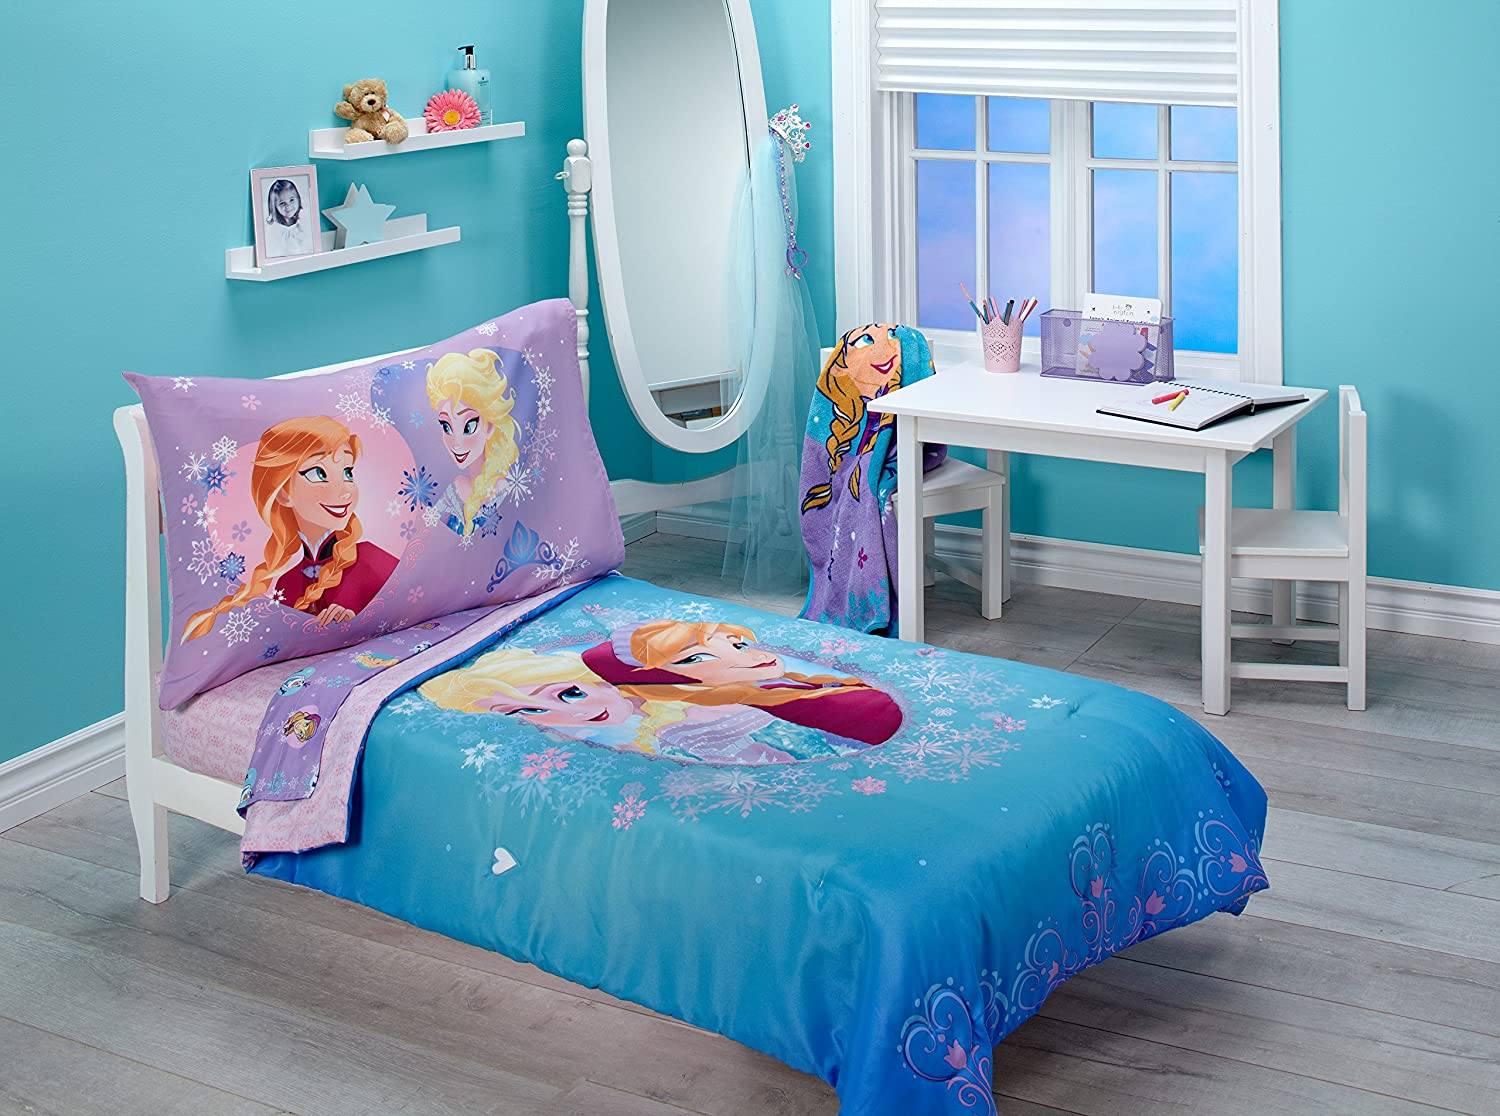 Toy story toddler bedding - Amazon Com Disney Frozen Magical Sisters 4 Piece Toddler Bedding Set Pink Purple Blue Baby